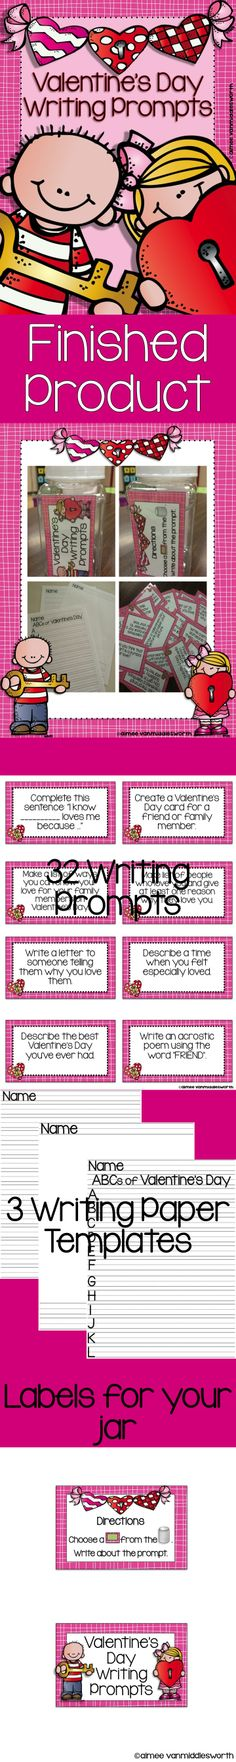 Valentine's Day Writing Prompts in a Jar!